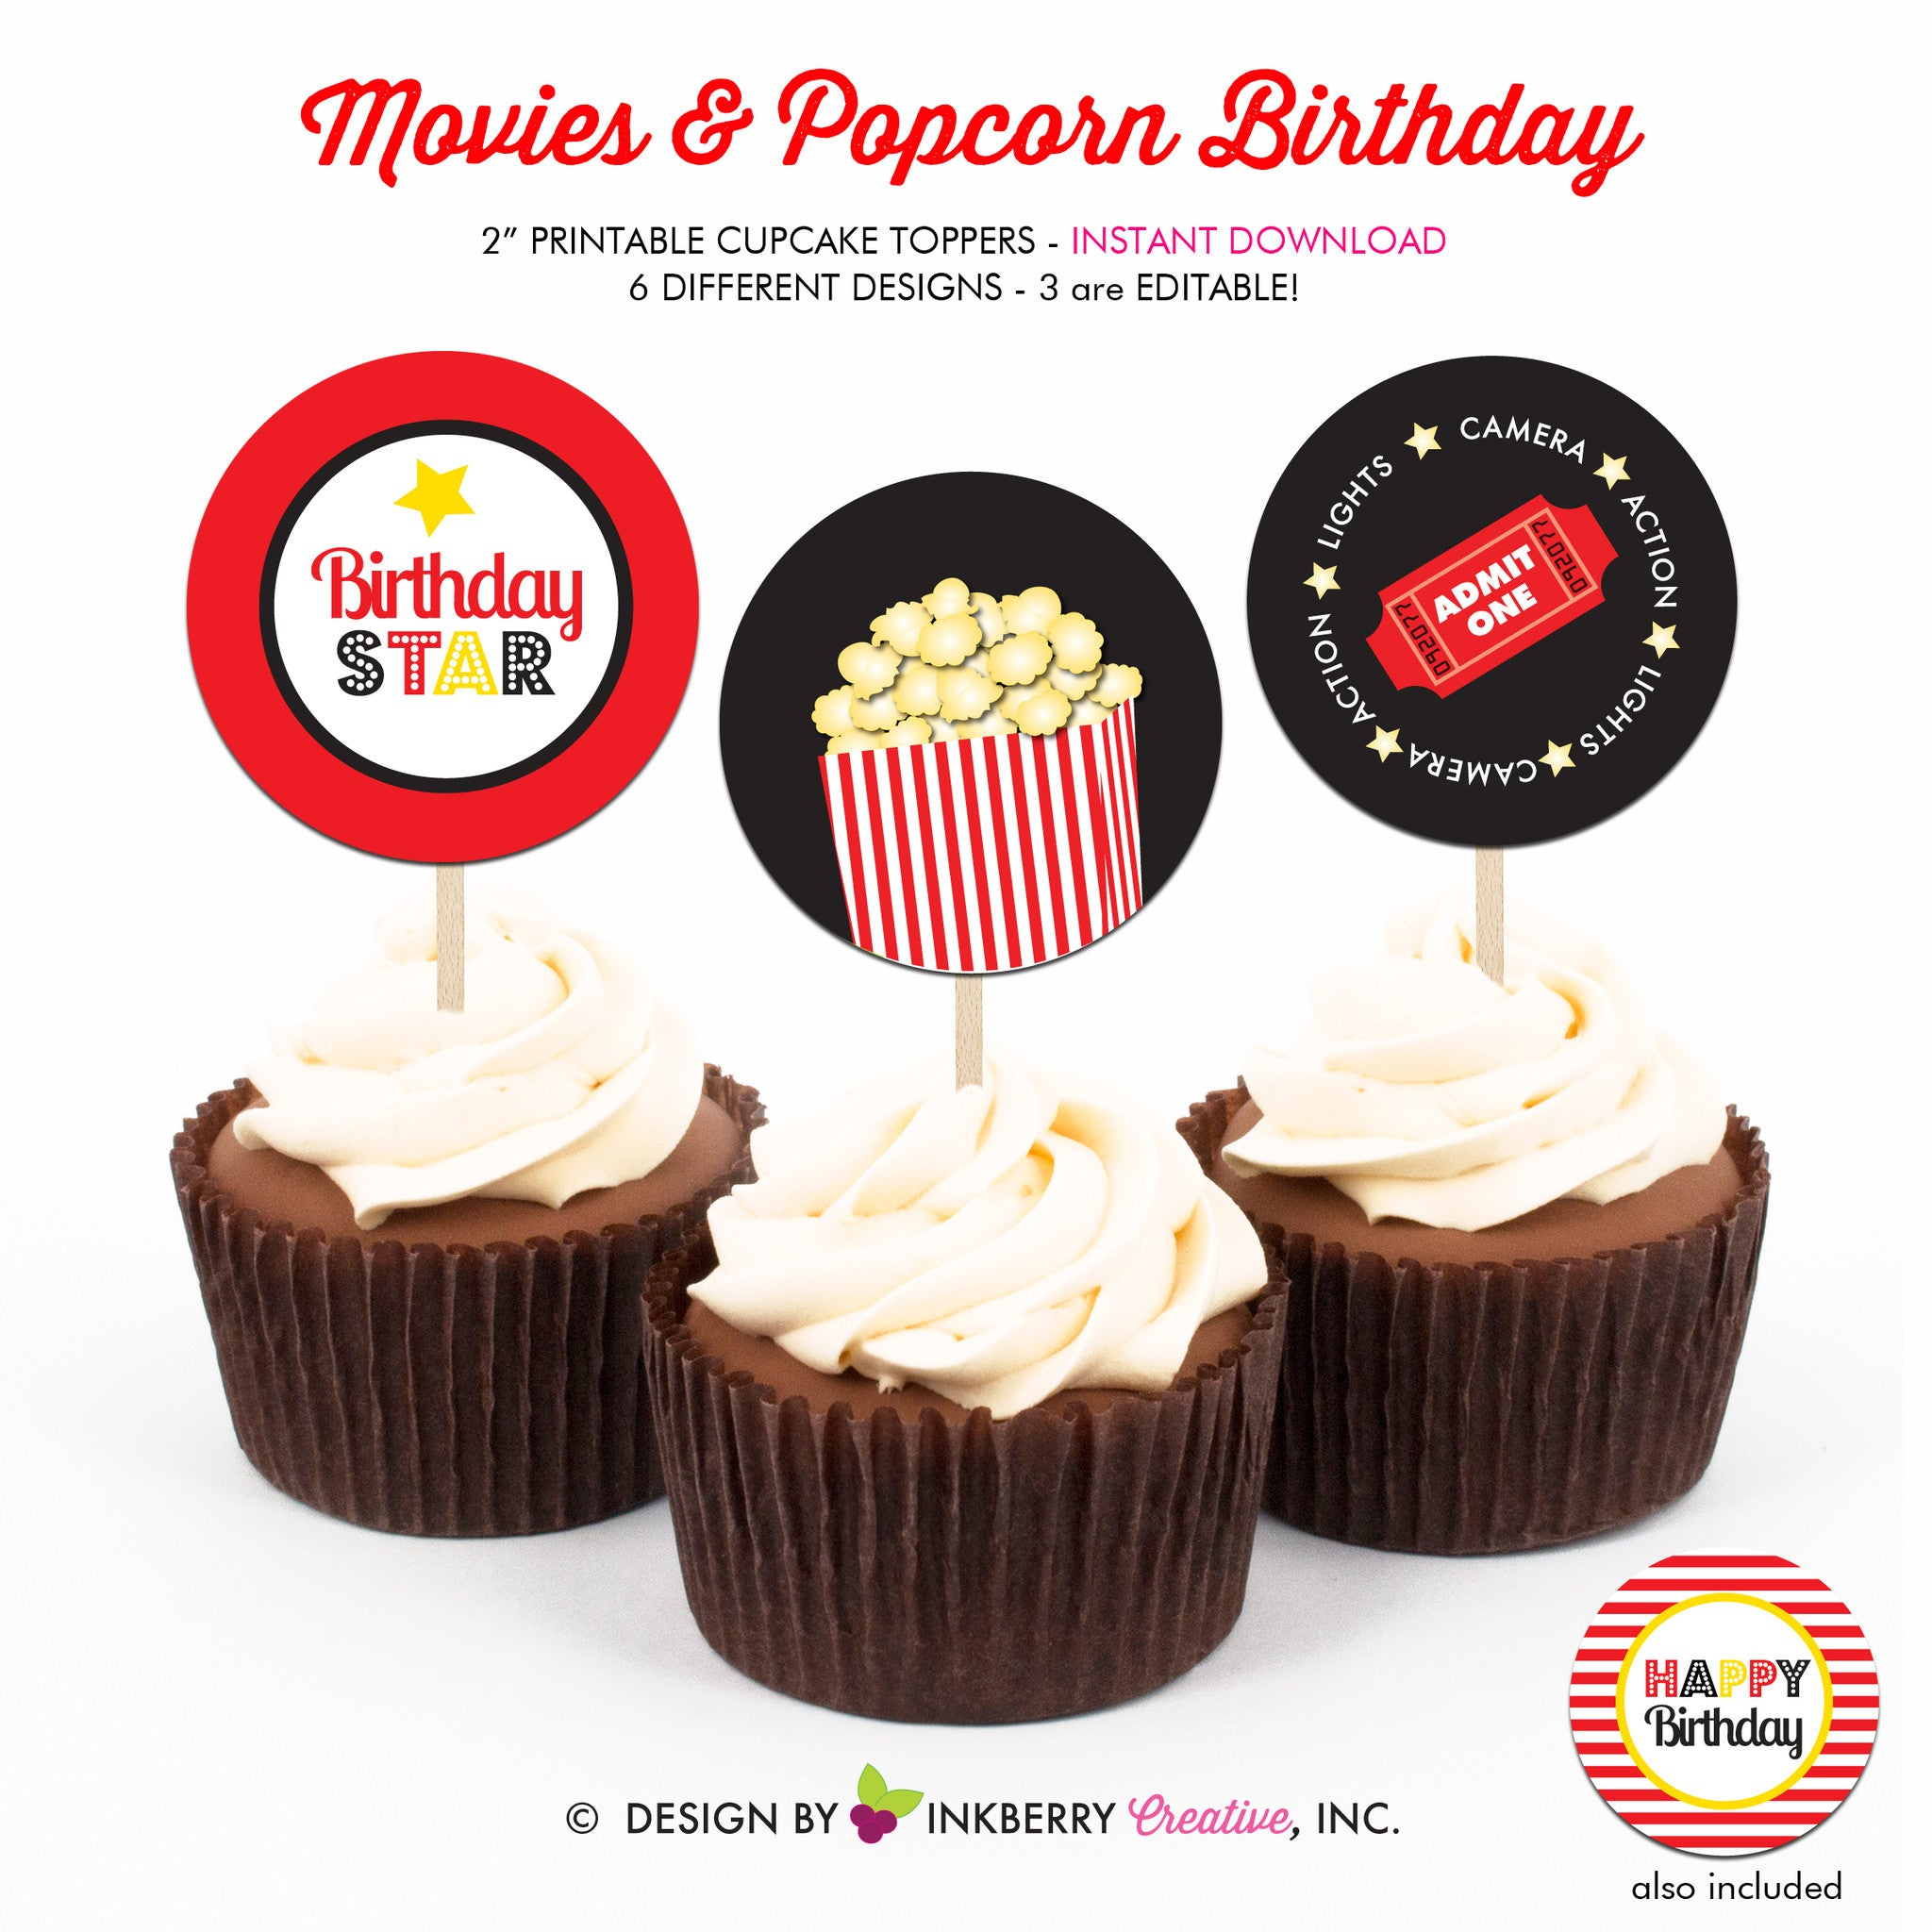 graphic regarding Printable Cupcake Toppers known as Motion pictures and Popcorn - Printable Cupcake Toppers - Immediate Obtain PDF Report